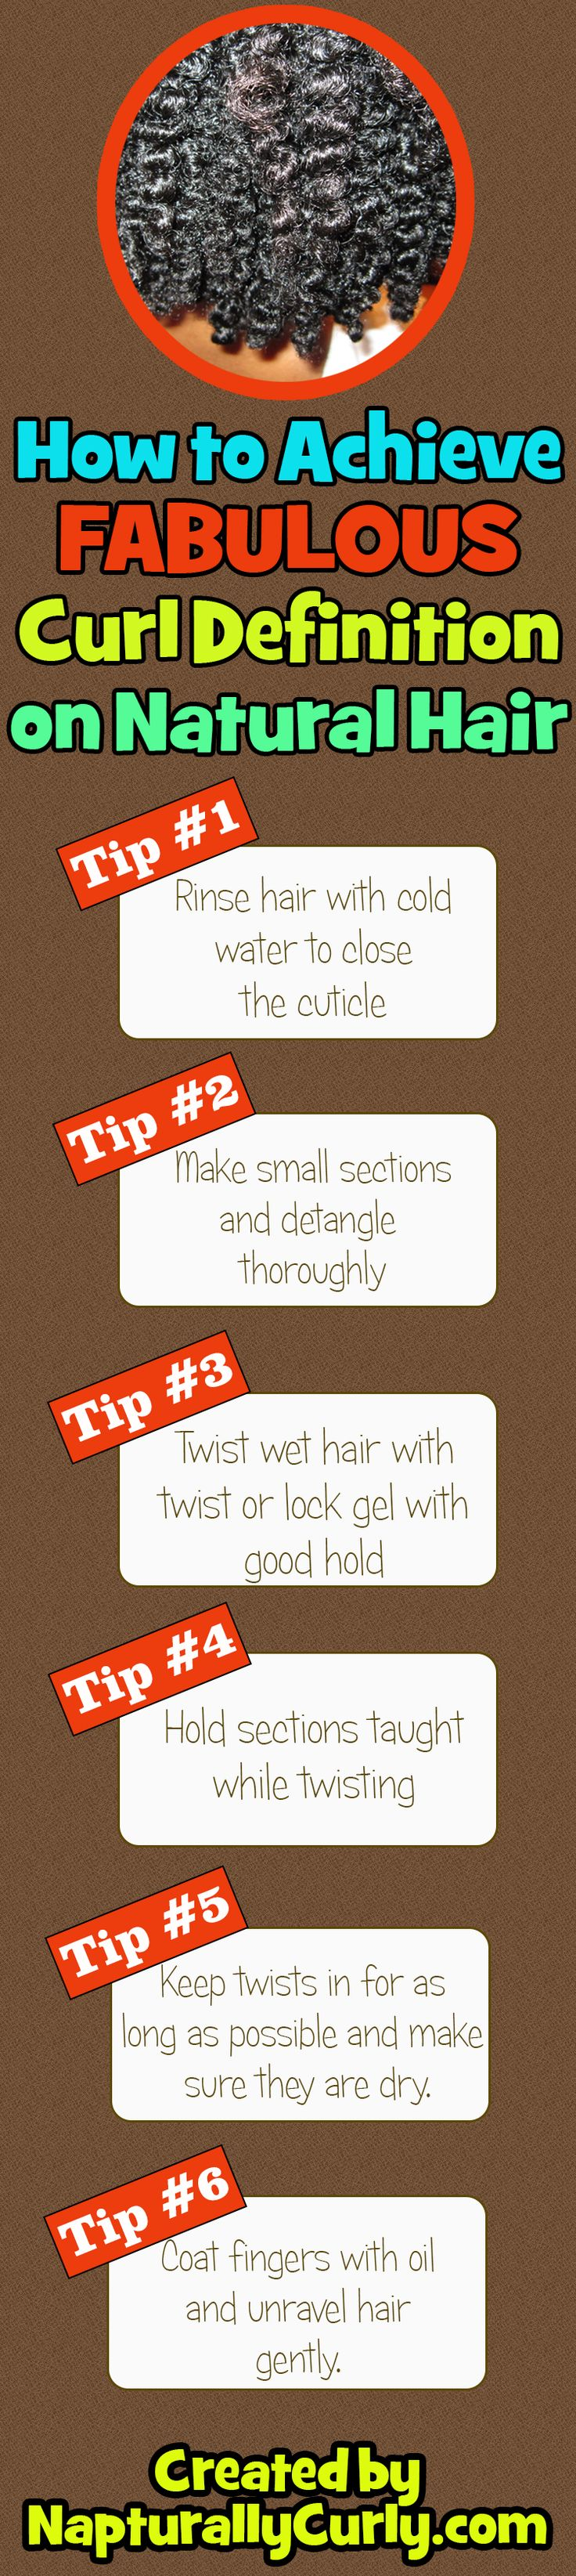 Natural hair is still pretty without curl definition but here are some tips when you want to define your tresses. via http://napturallycurly.com